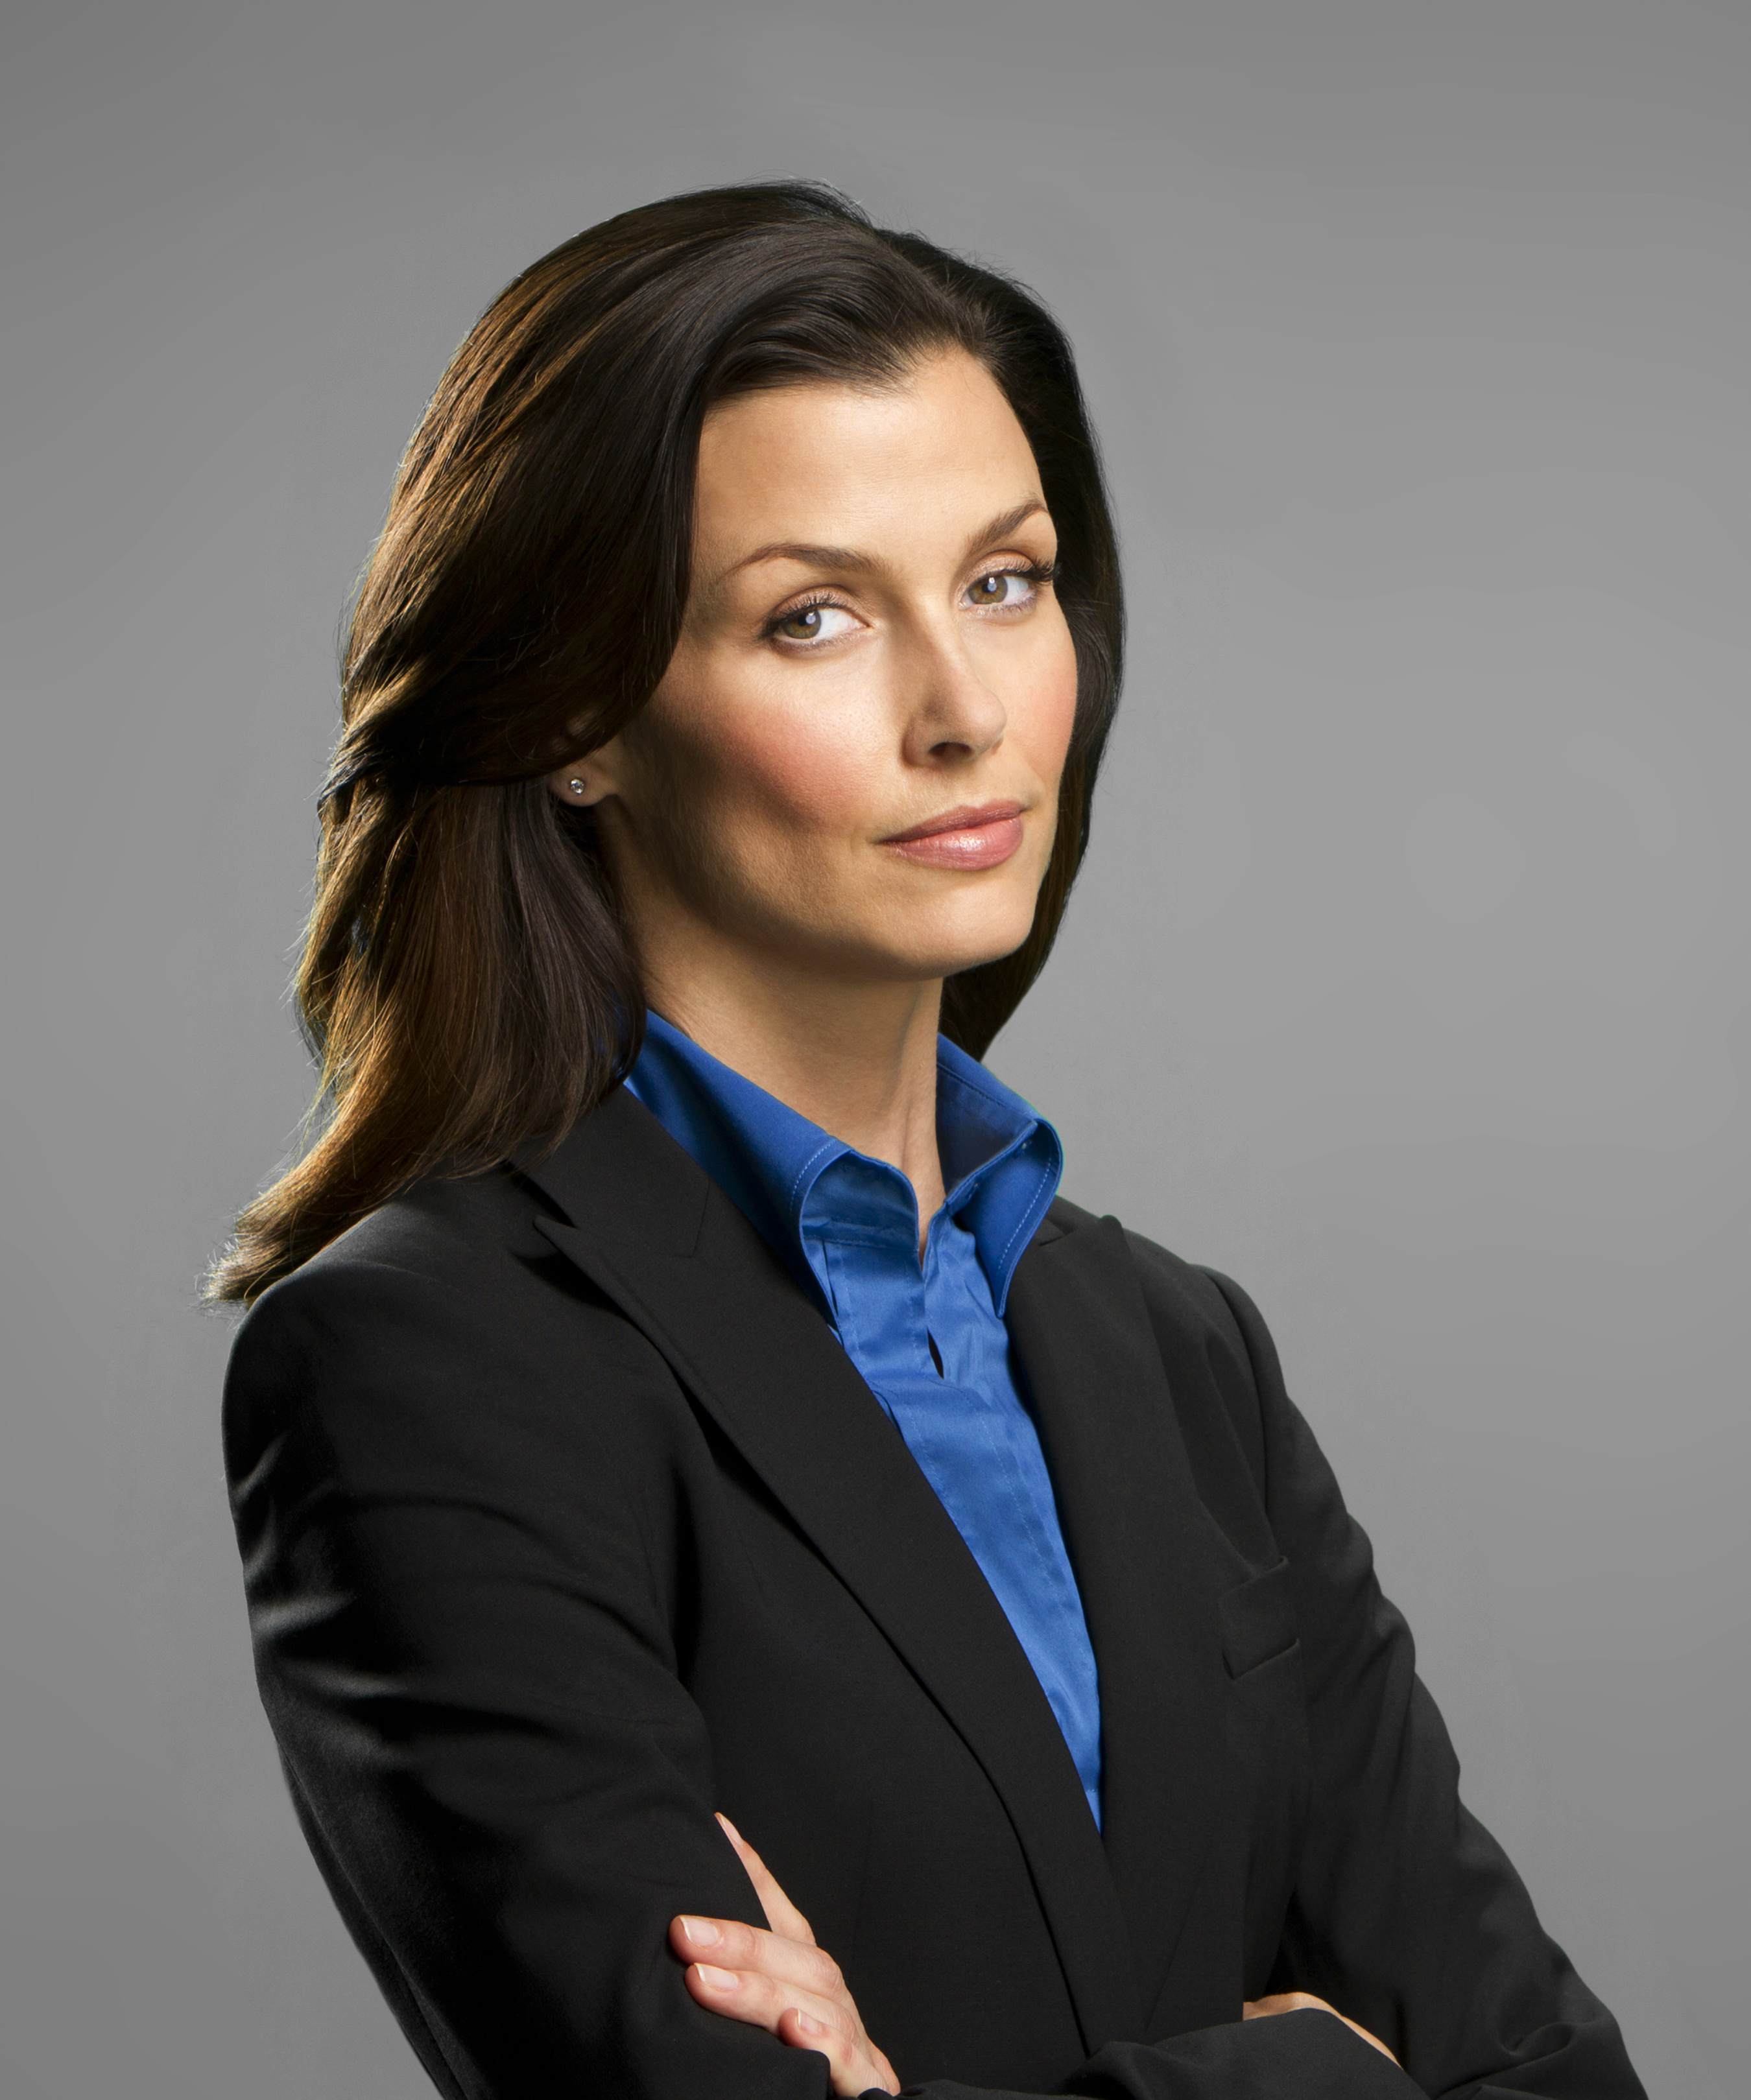 Bridget Moynahan on blue bloods